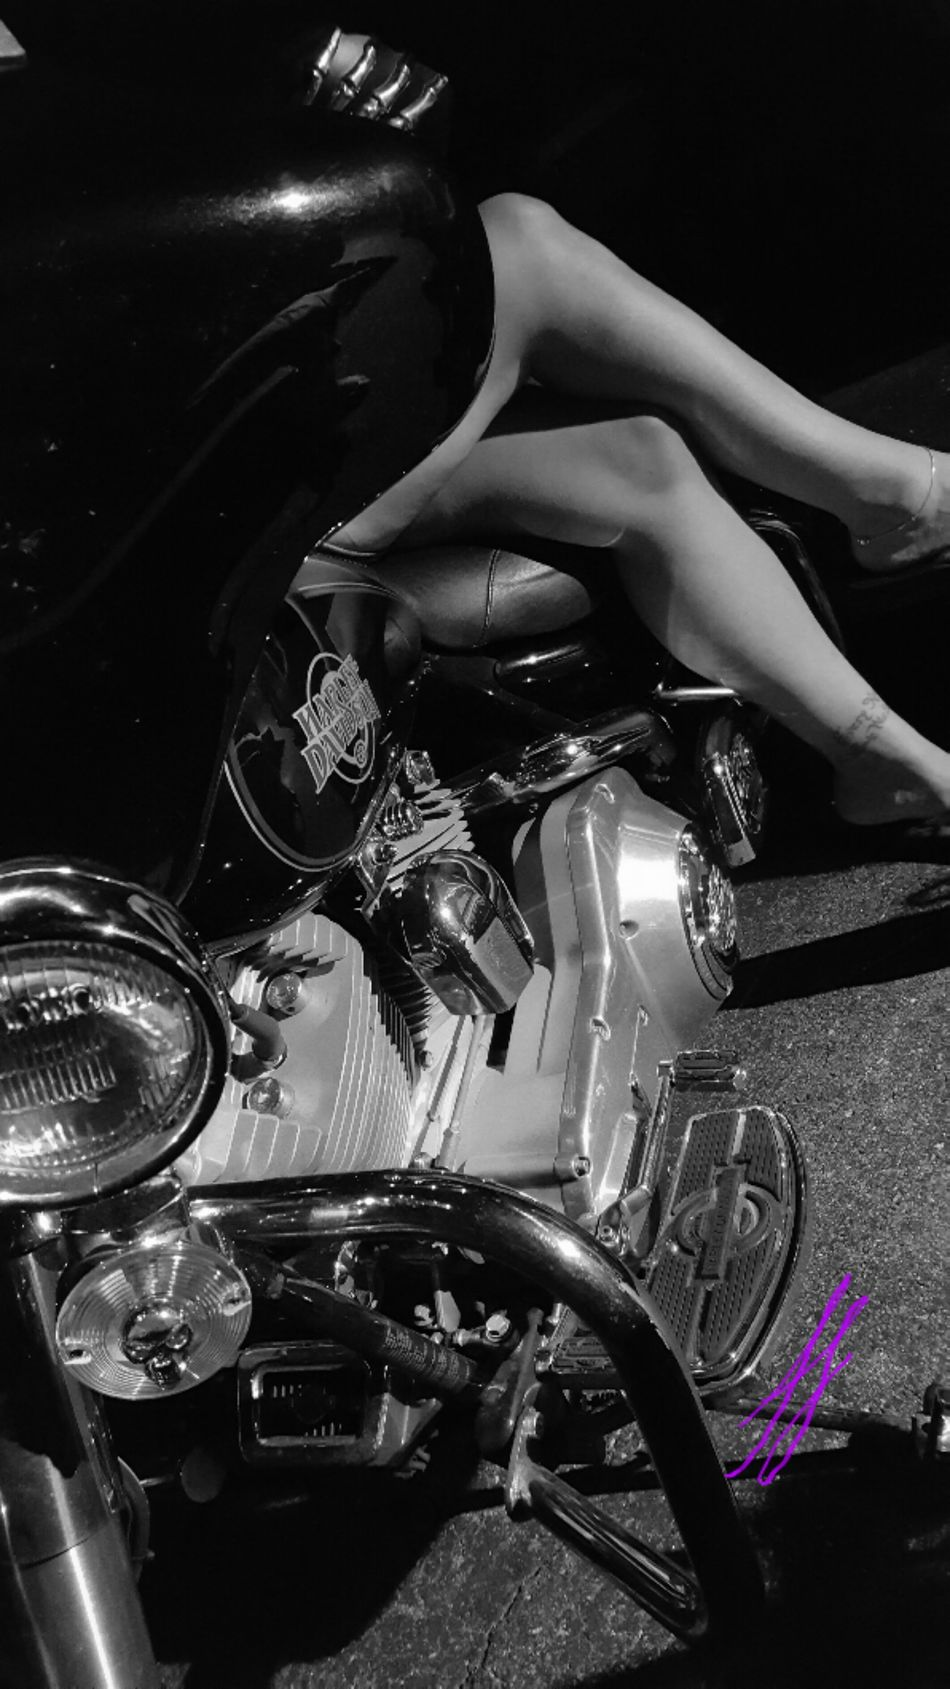 Legs Harley Davidson Harleydavidson Check This Out Beautiful ♥ That's Awesome HarleyDavidsonMotorcycles Taking Photos Angles Legs_only Vavavoom Ladyonwheels Harleygirl Legs Legs Legs Black And White Photography Blackandwhite